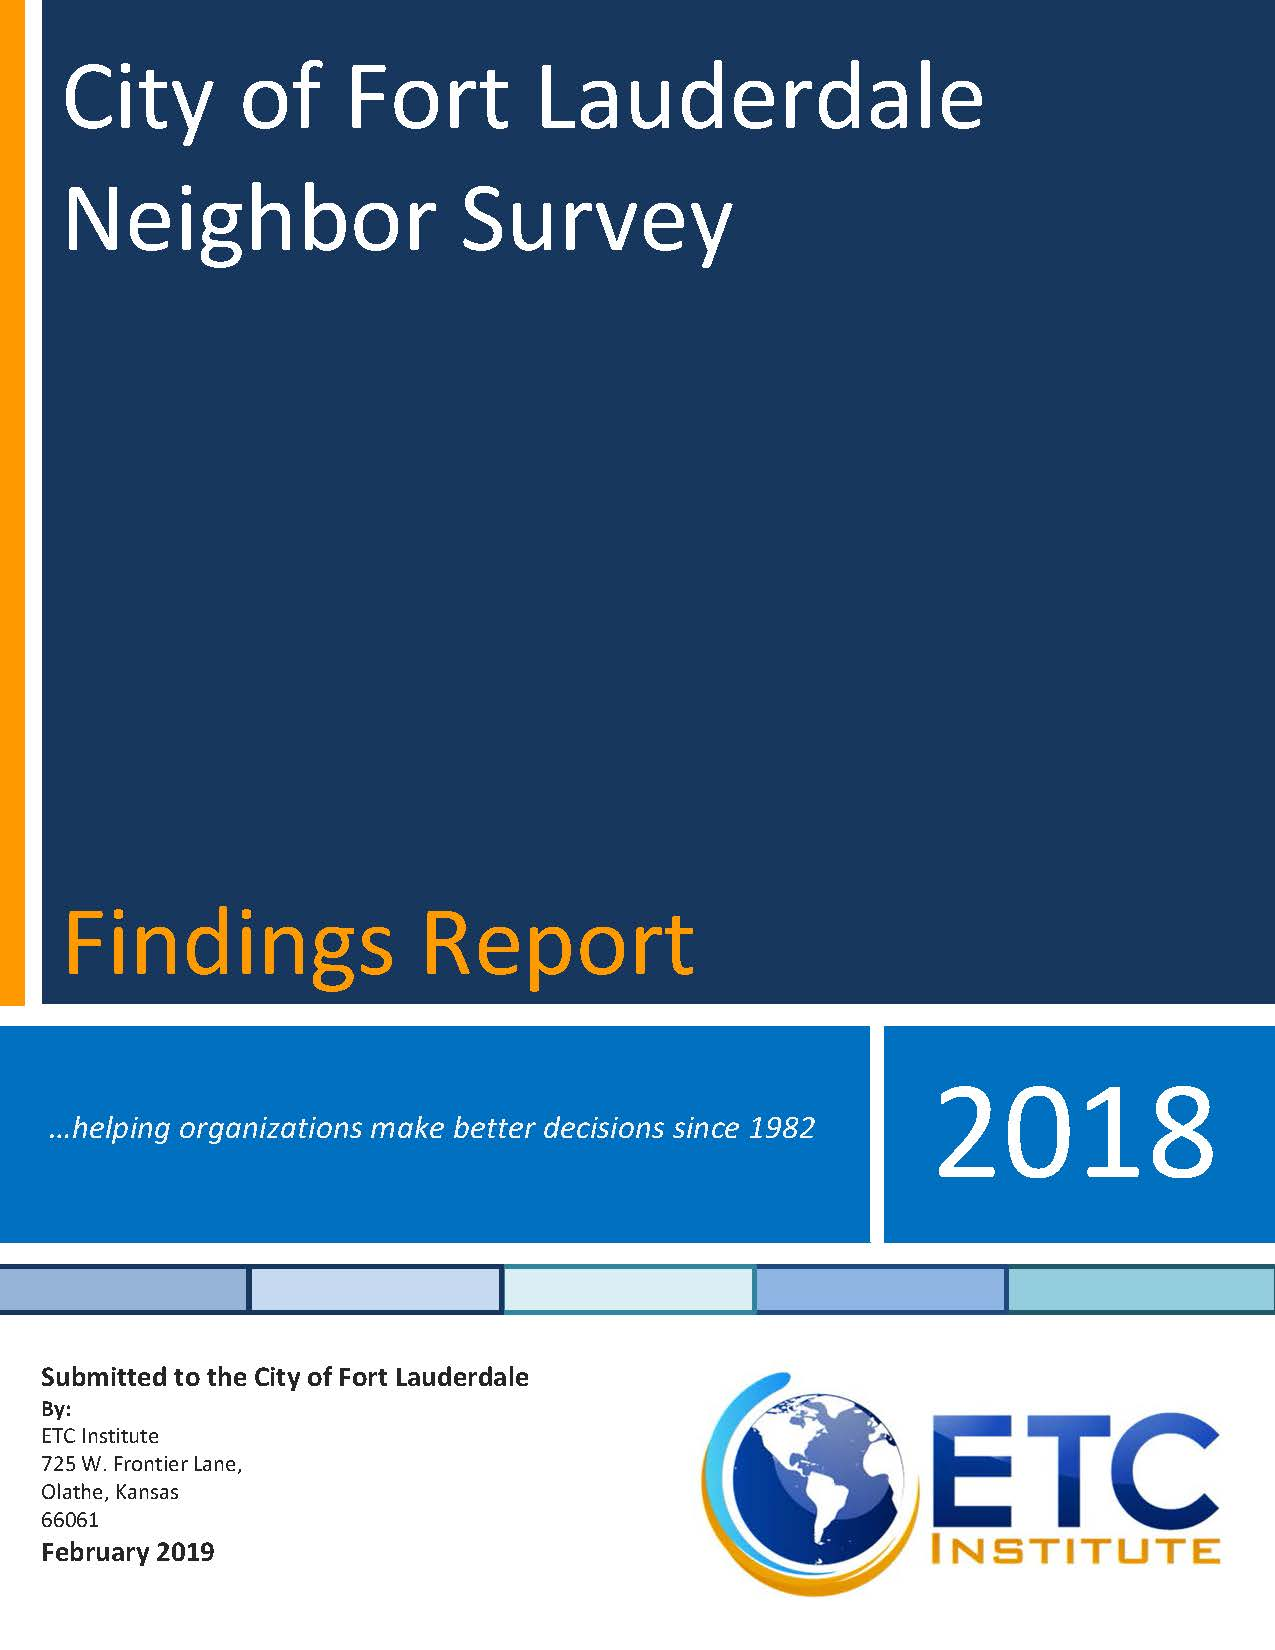 2018 City of Fort Lauderdale Neighbor Survey